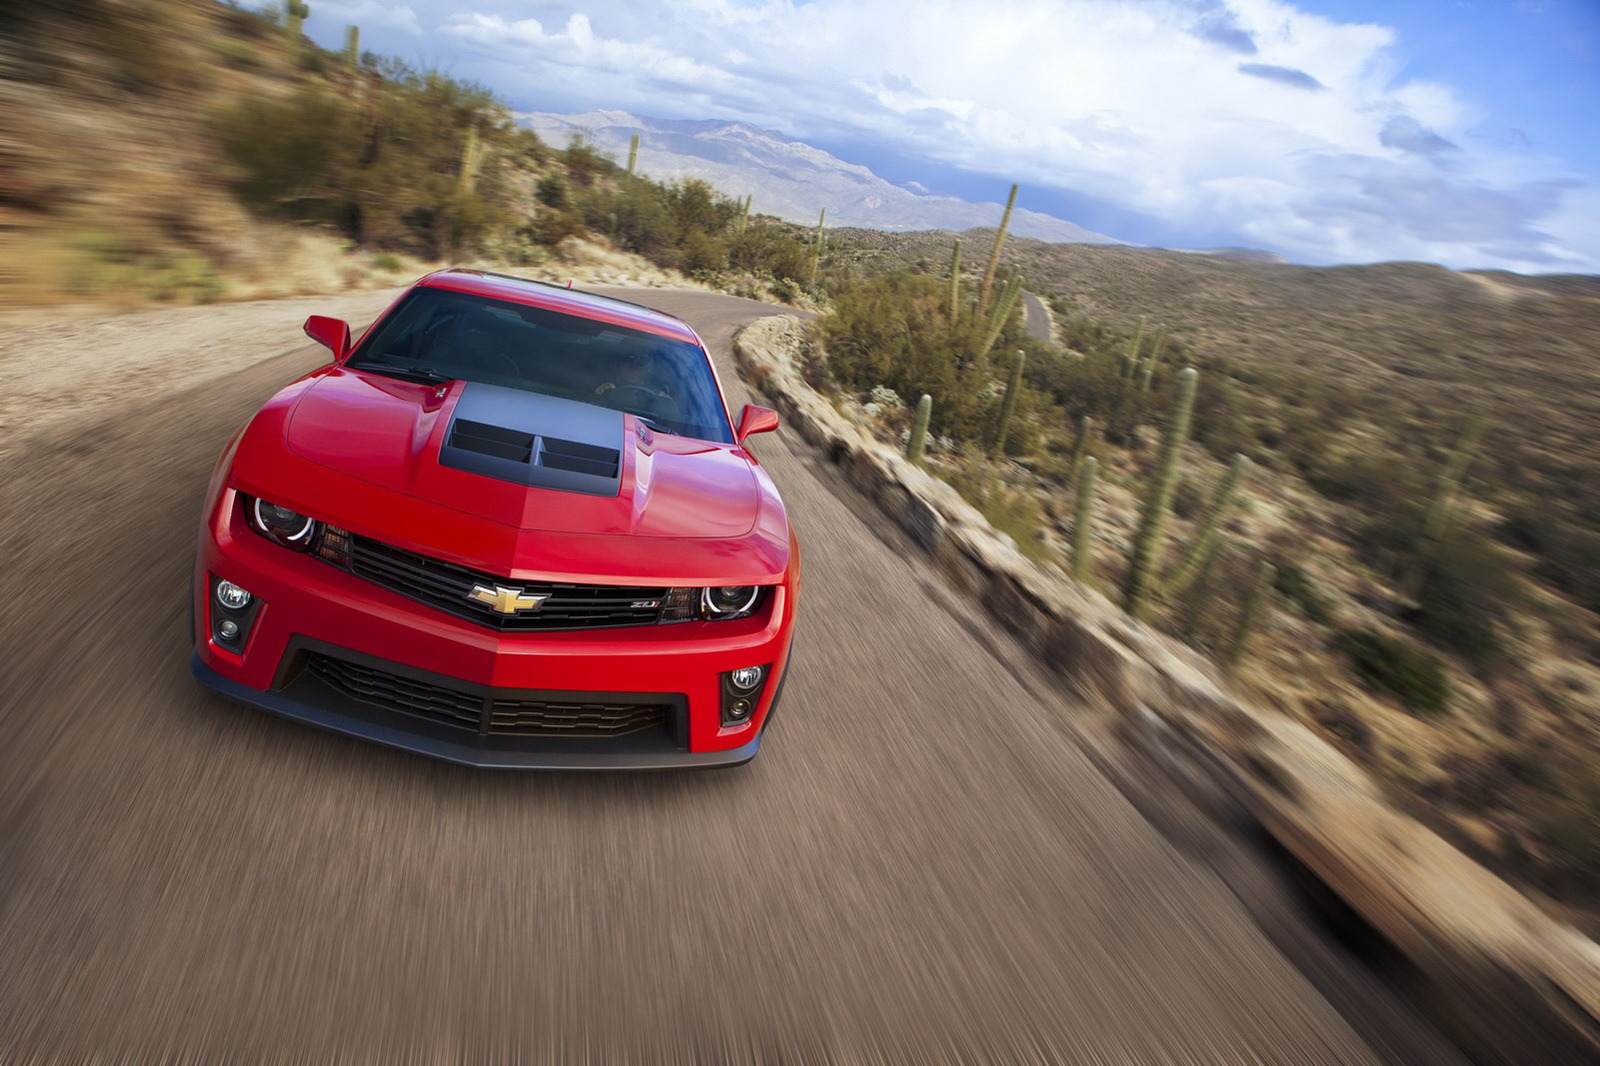 2012 - 2013 chevrolet camaro zl1 review - top speed